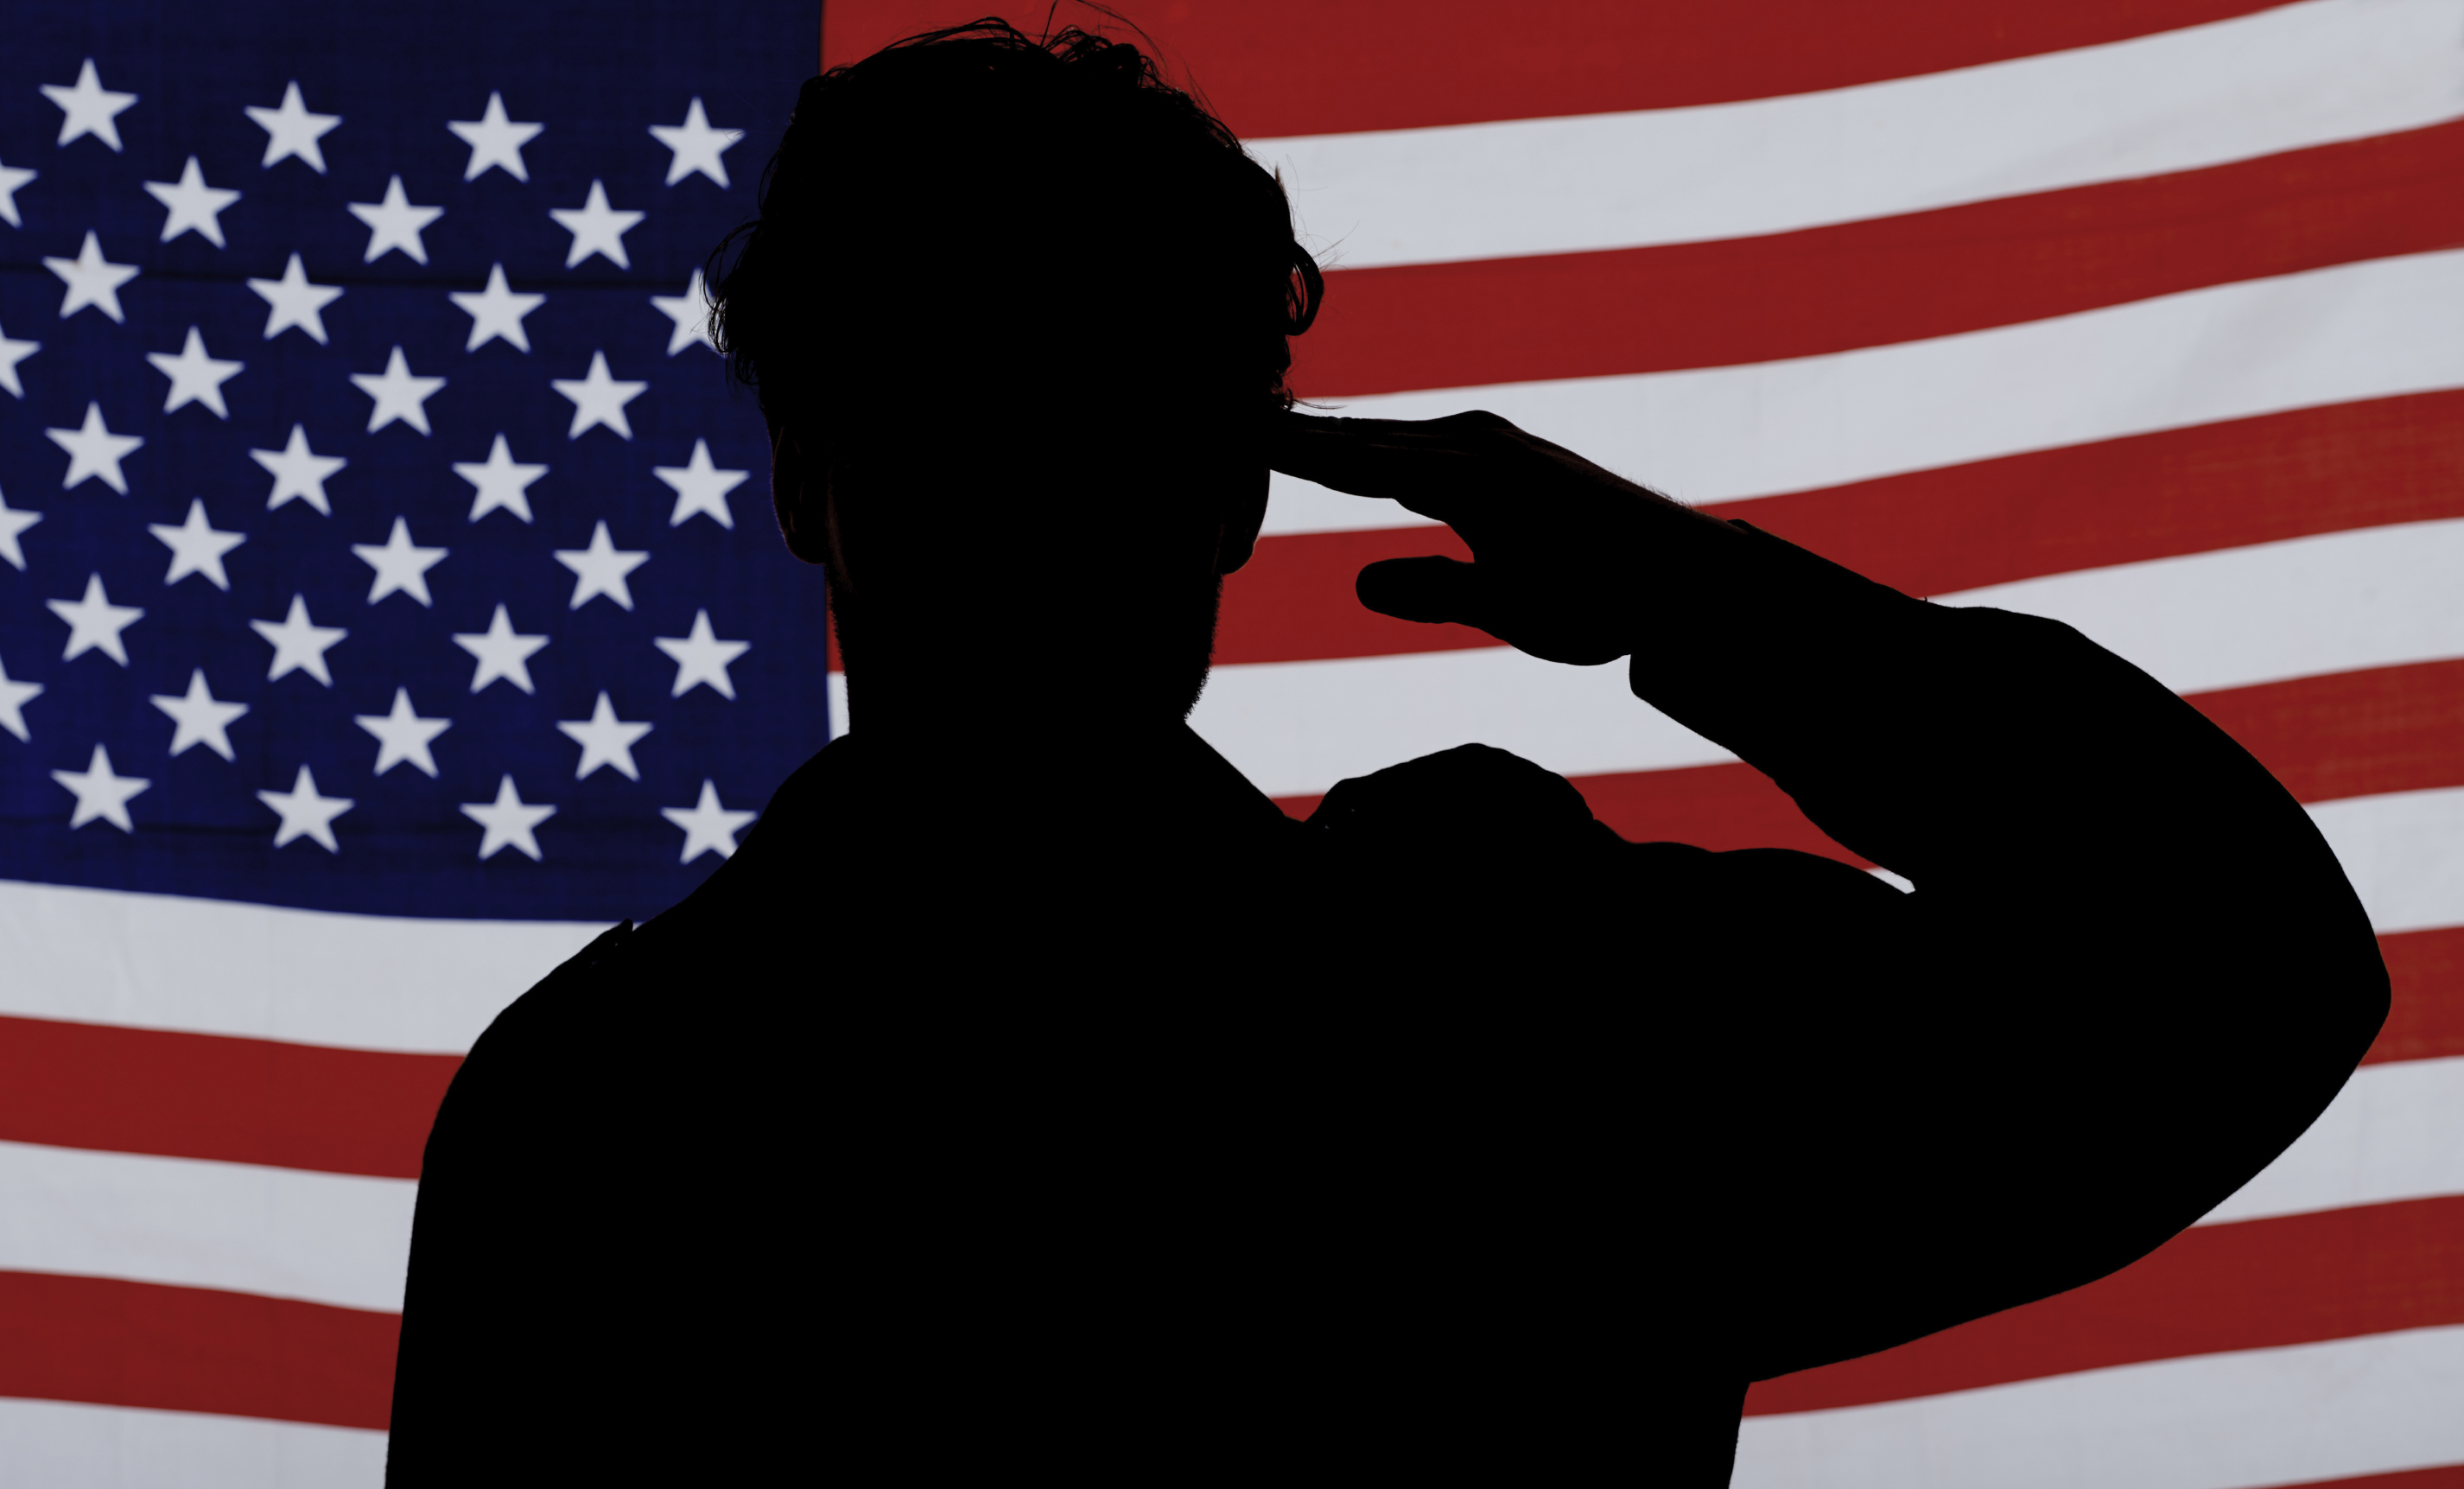 Tate Collaborates on Issue devoted to mTBI in Veterans and Service Personnel